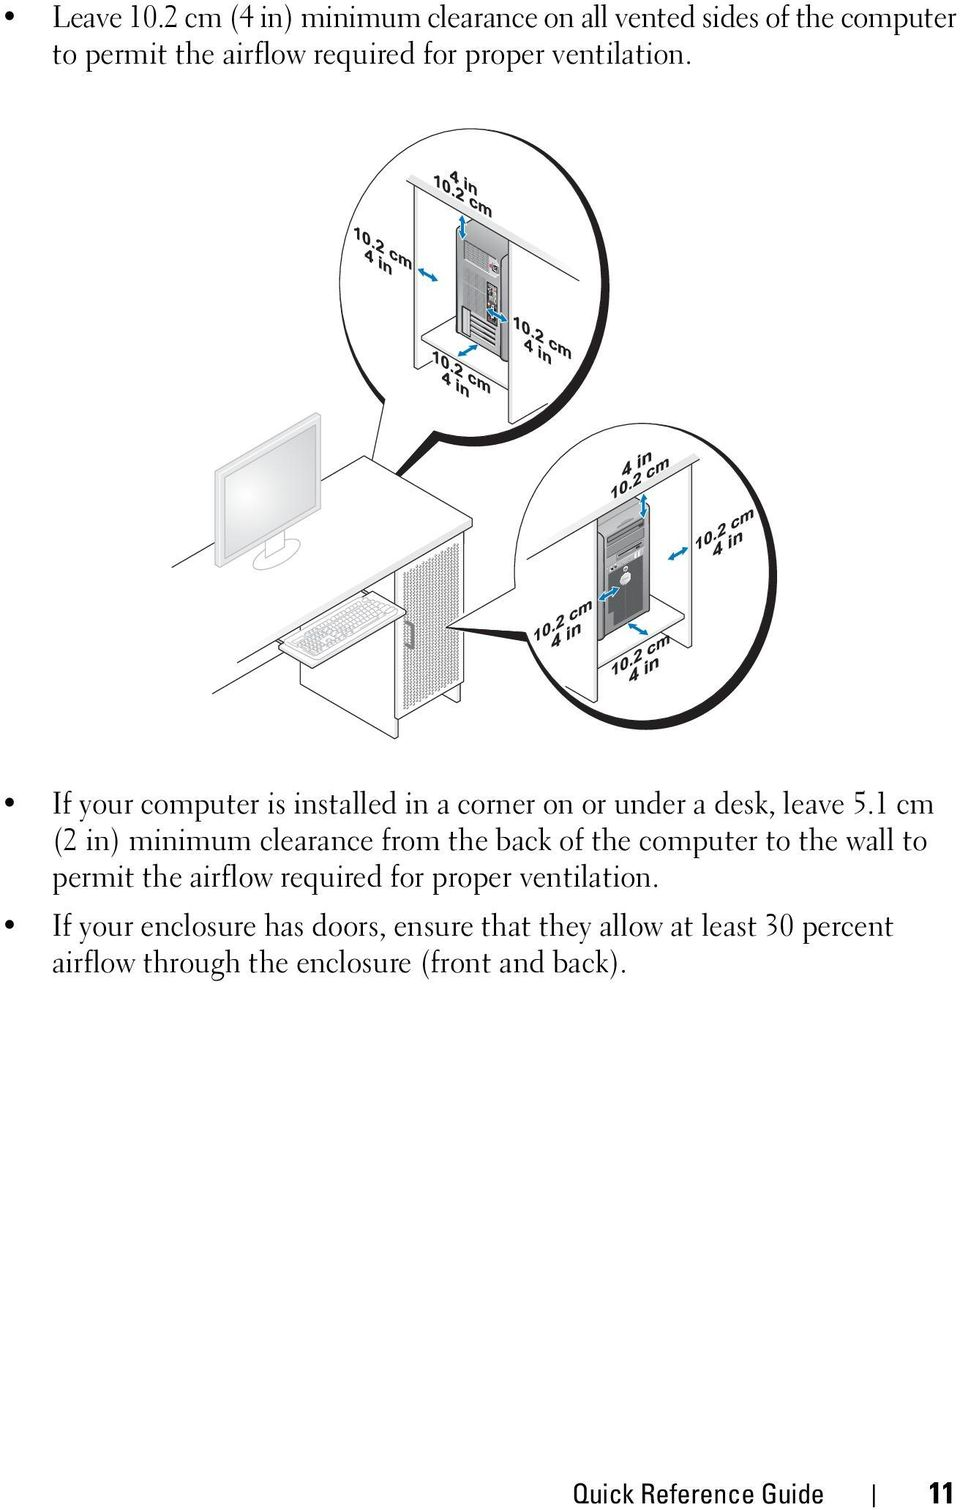 ventilation. If your computer is installed in a corner on or under a desk, leave 5.